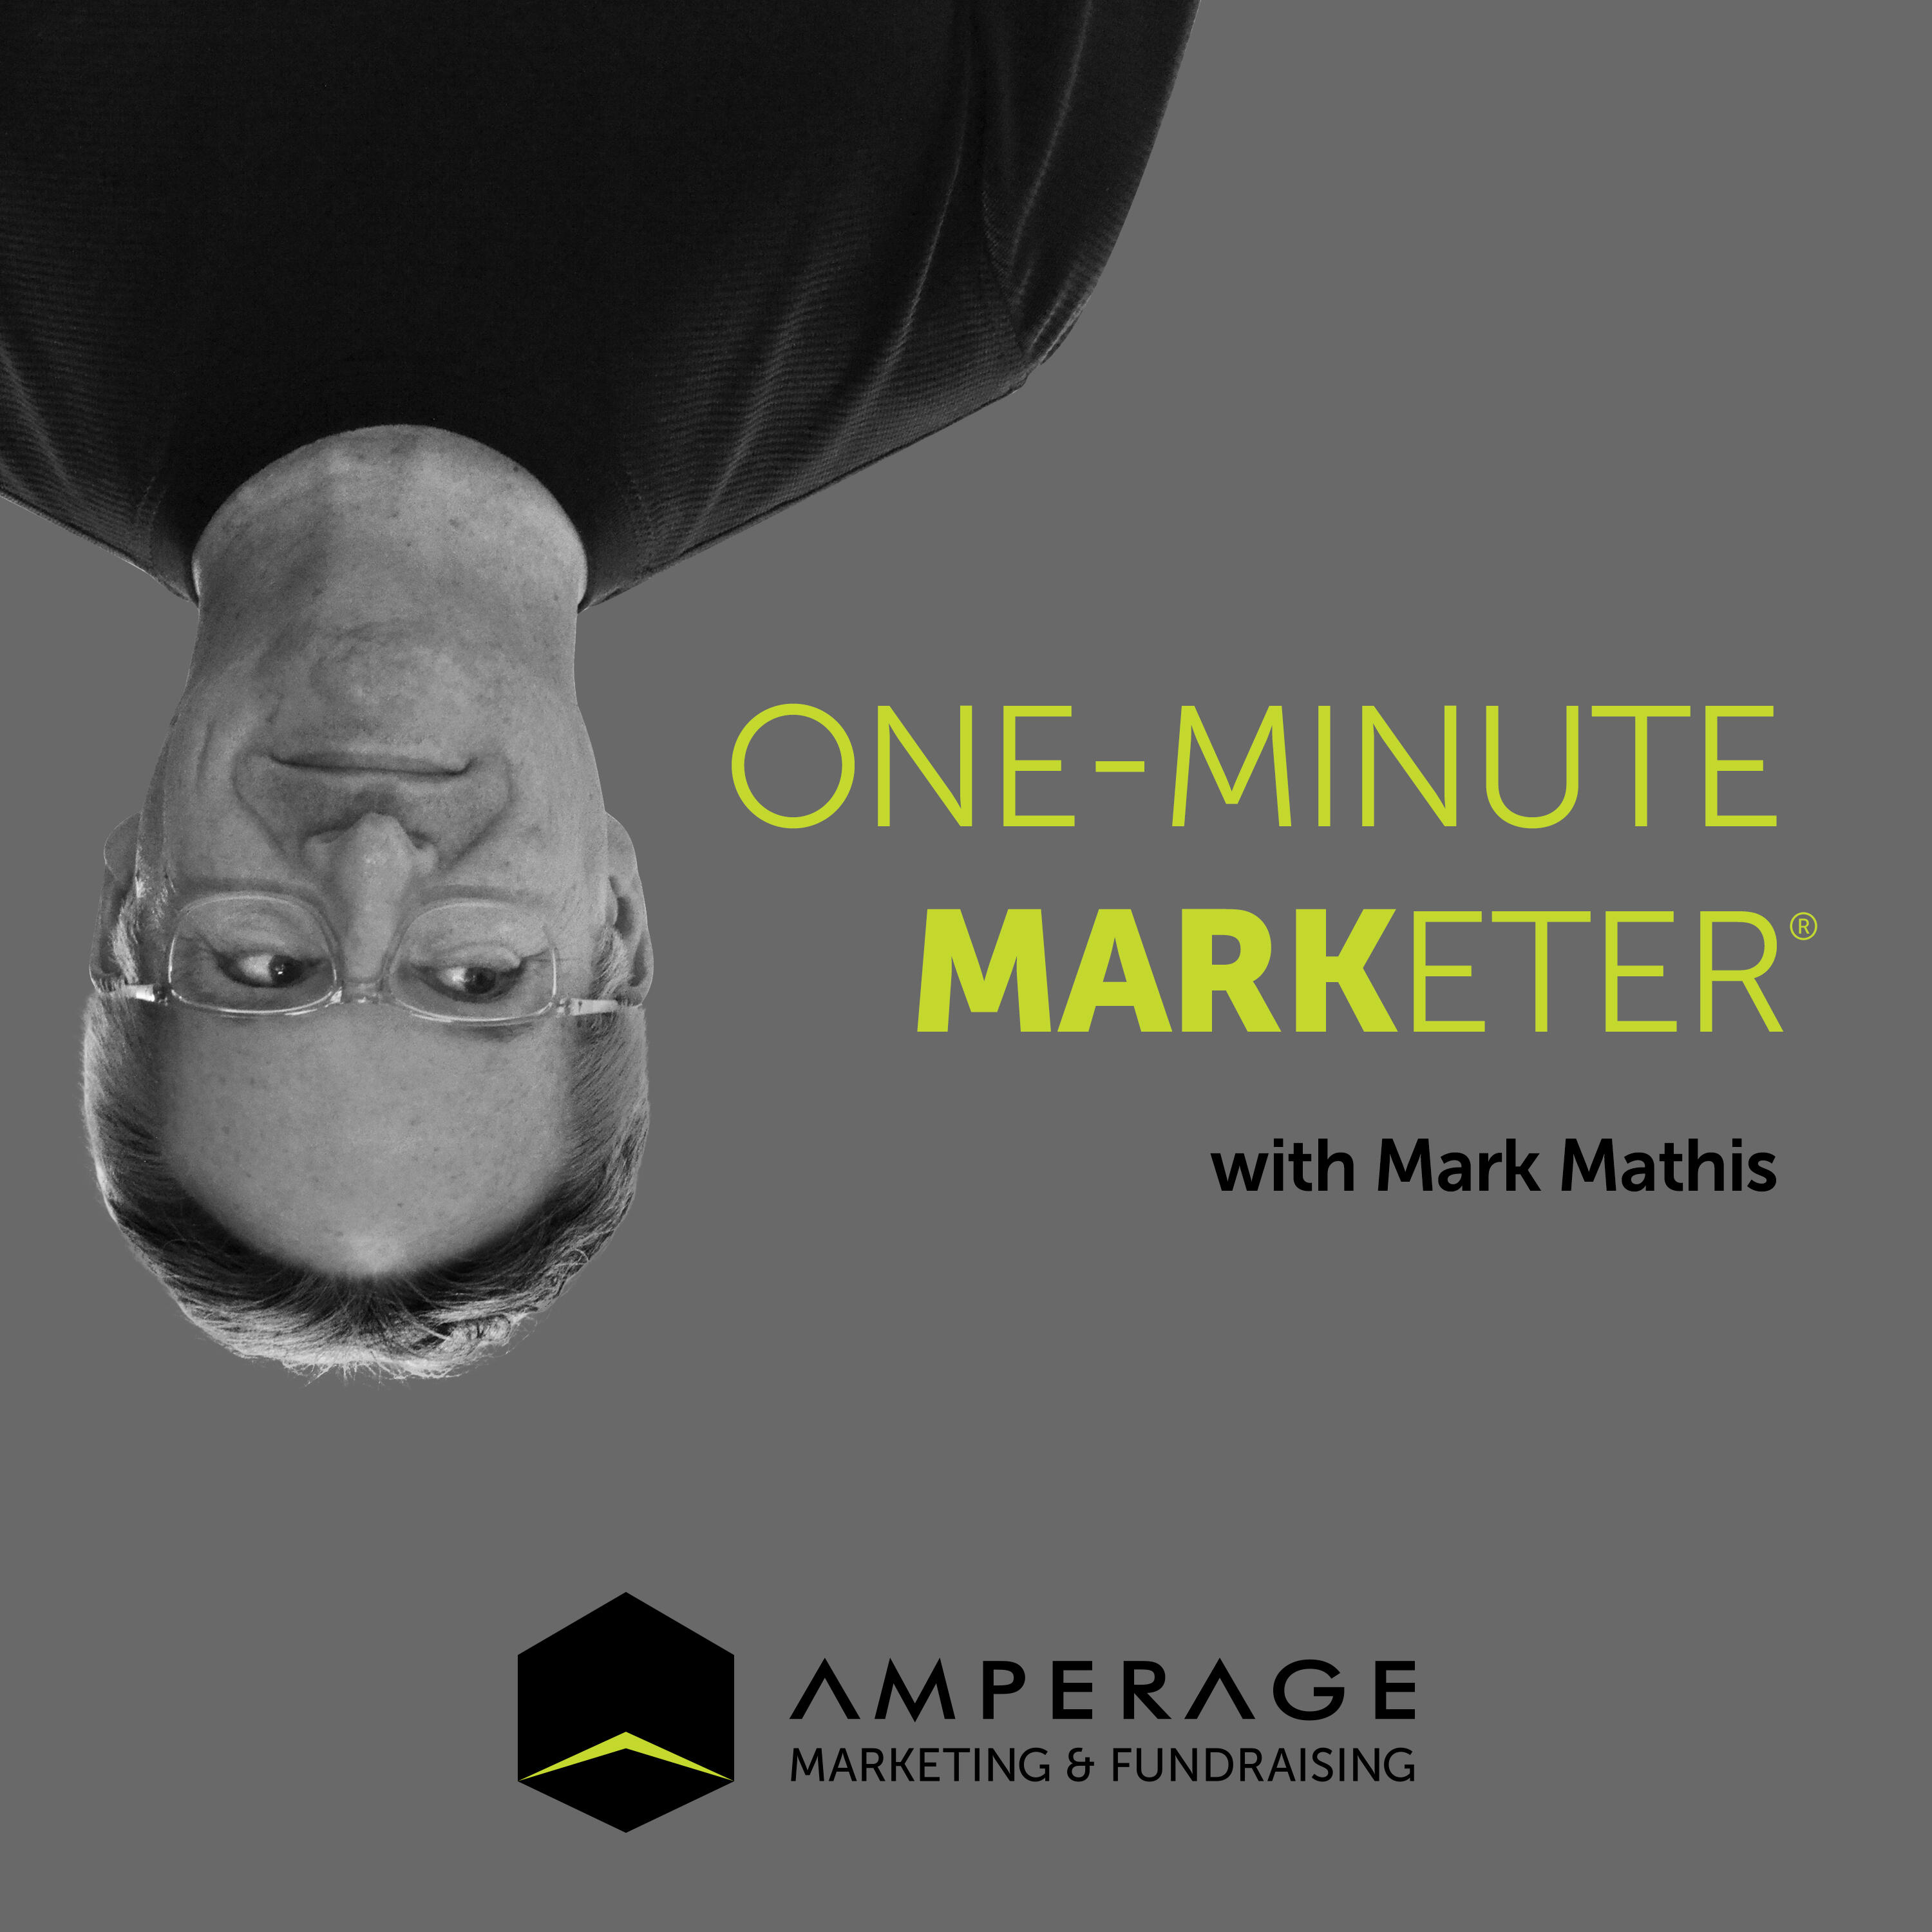 One-Minute Marketer with Mark Mathis